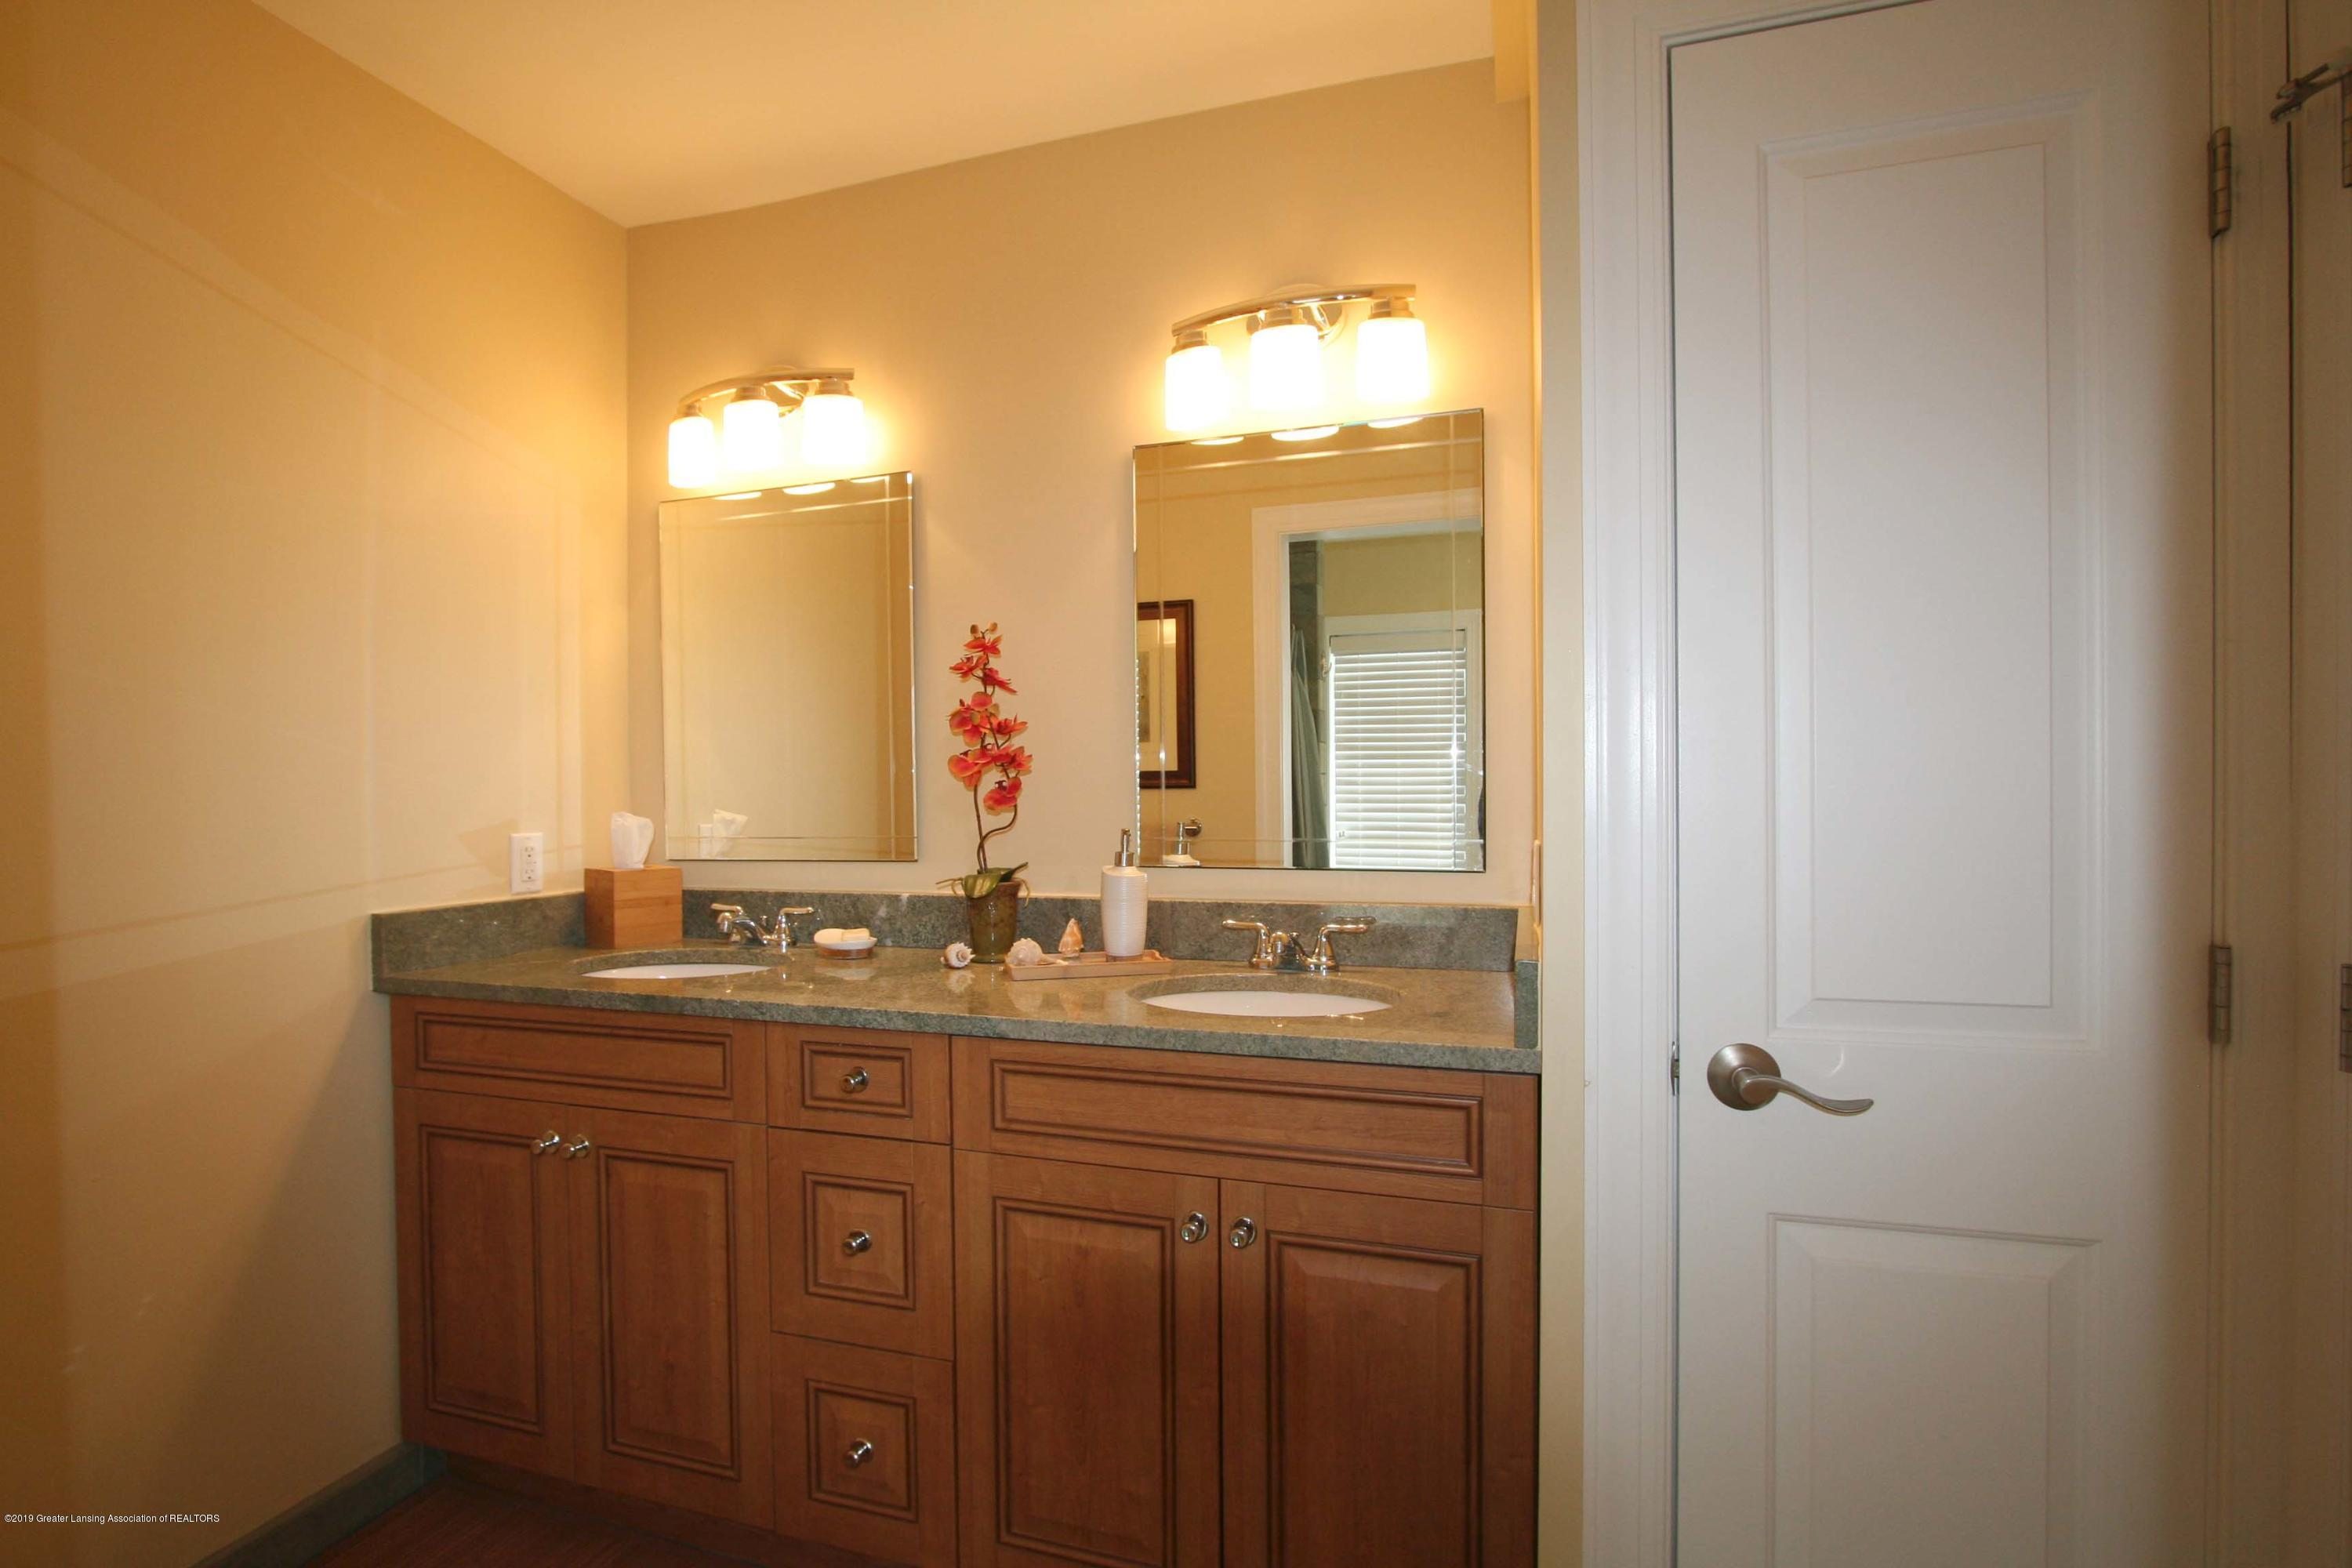 4271 Anderson Rd - 039 - 39